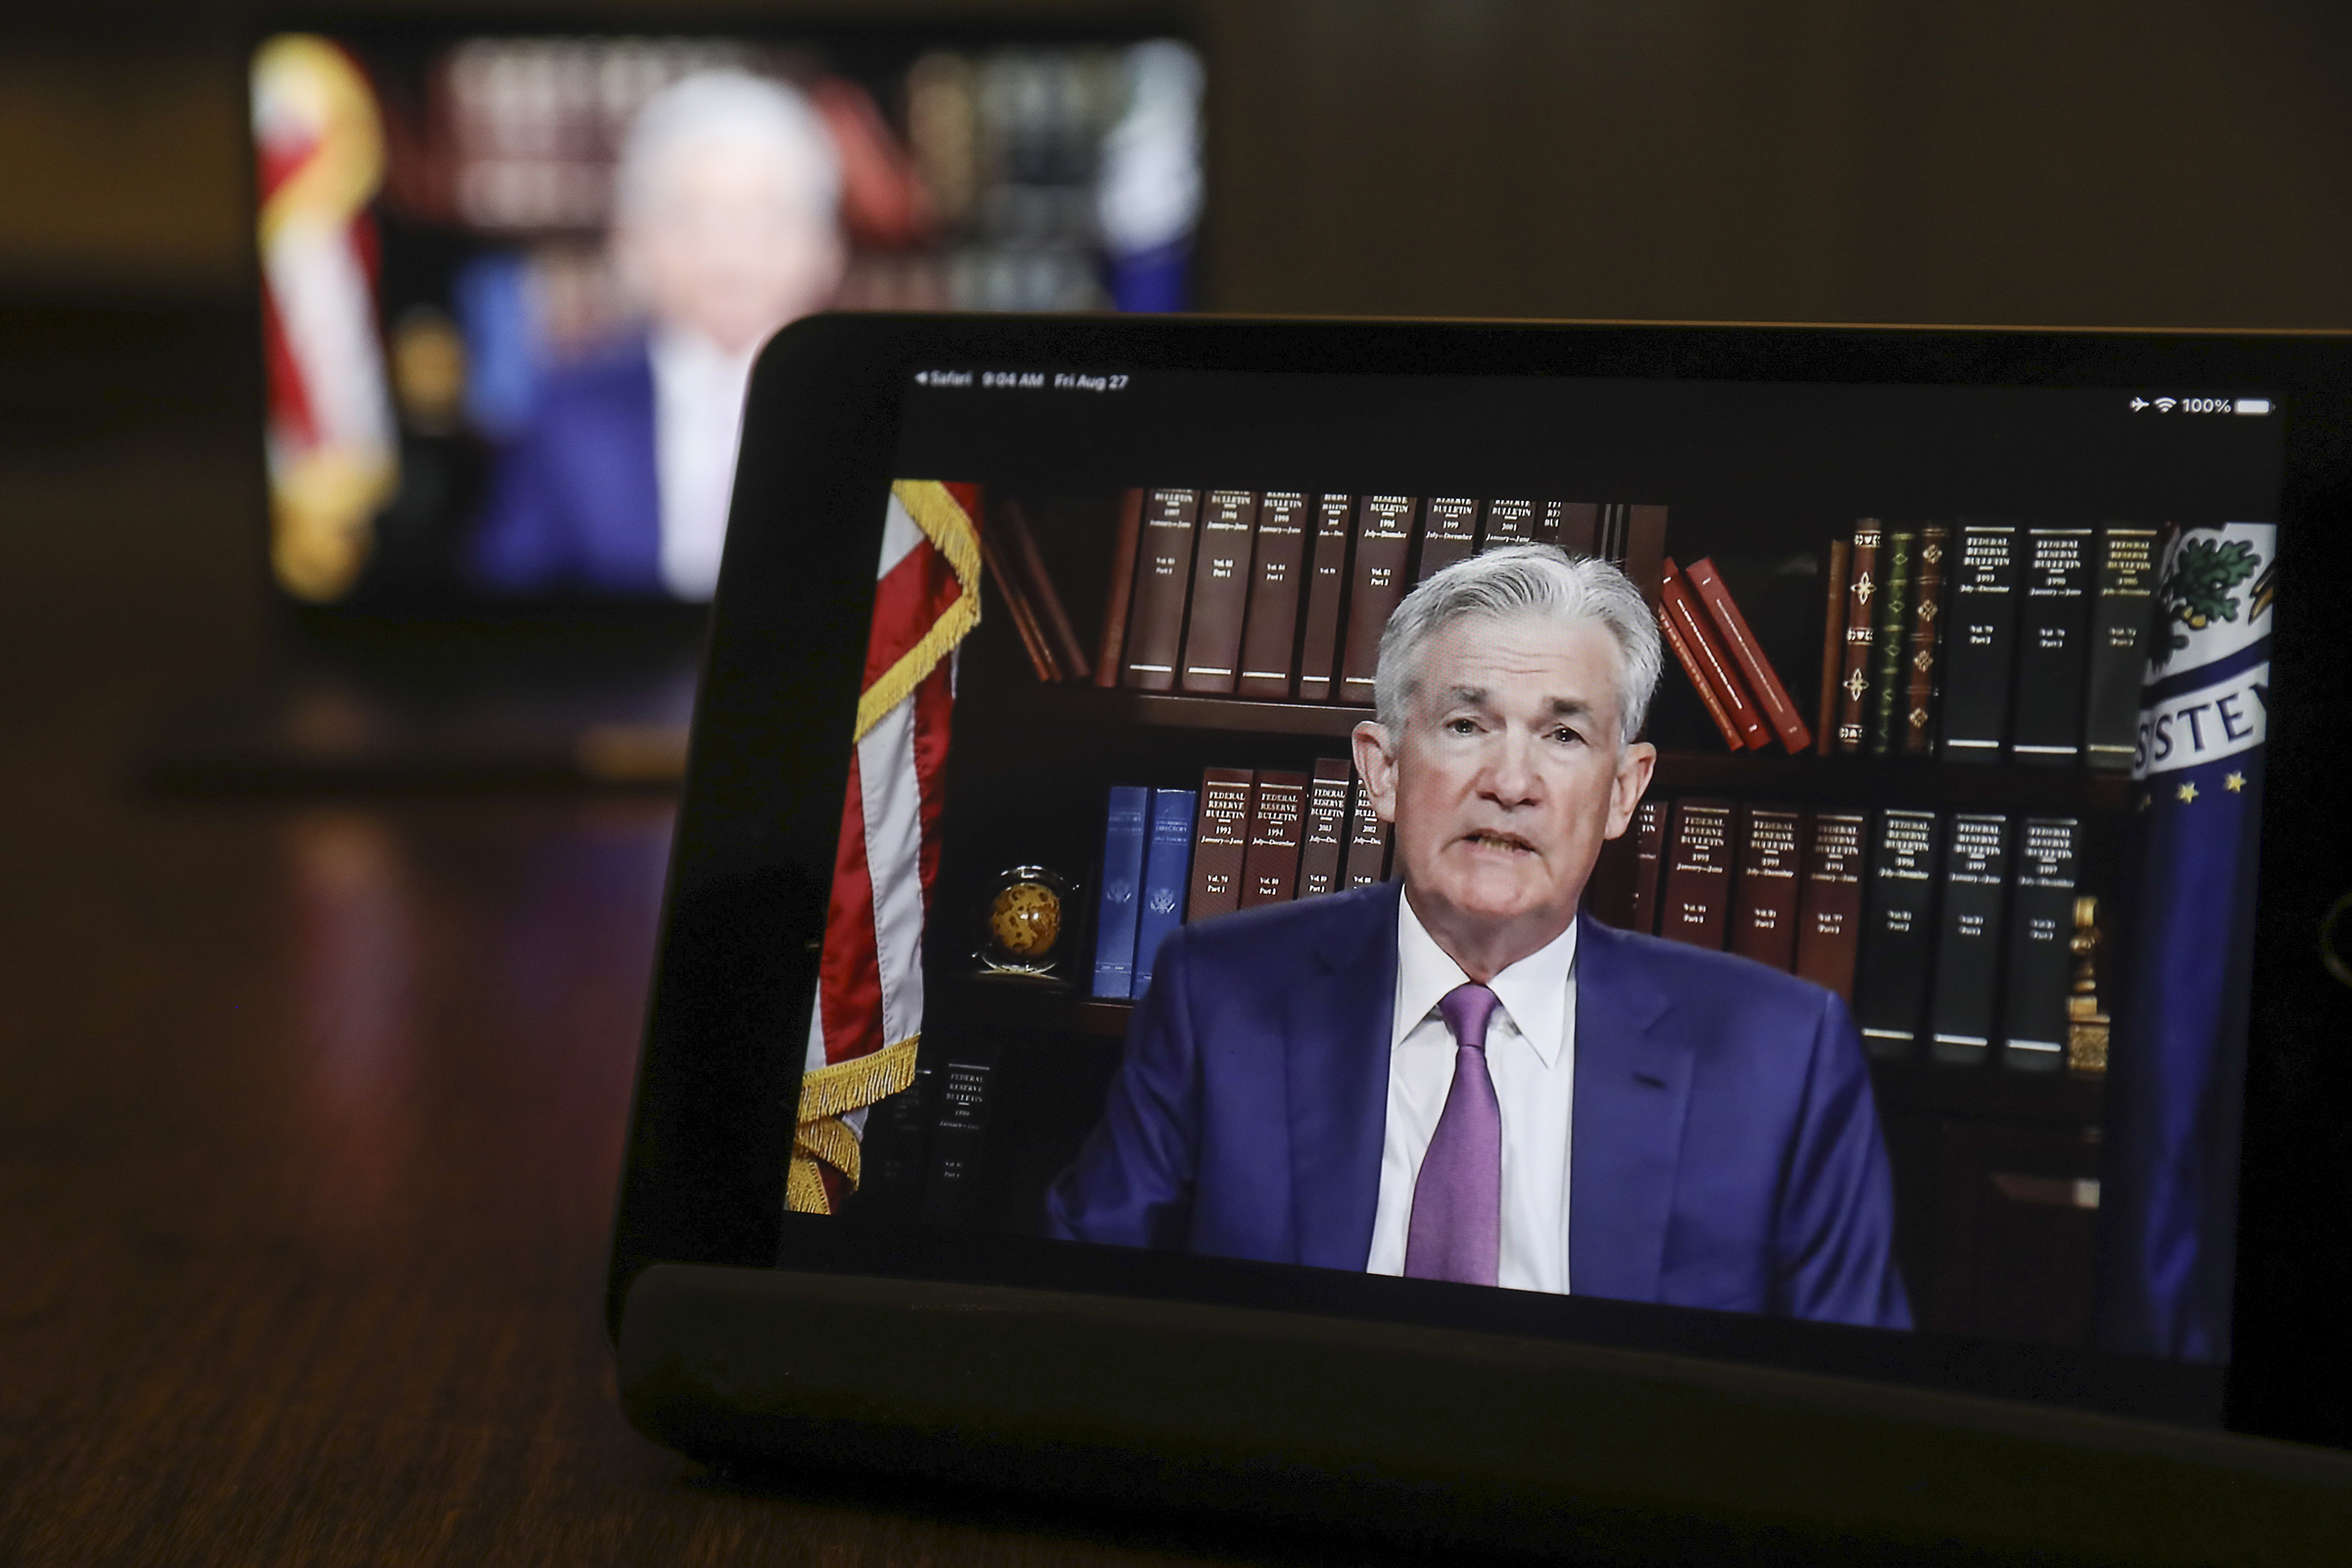 Jerome Powell, chairman of the U.S. Federal Reserve, speaks virtually during the Jackson Hole economic symposium in Tiskilwa, Ill. on Aug. 27.